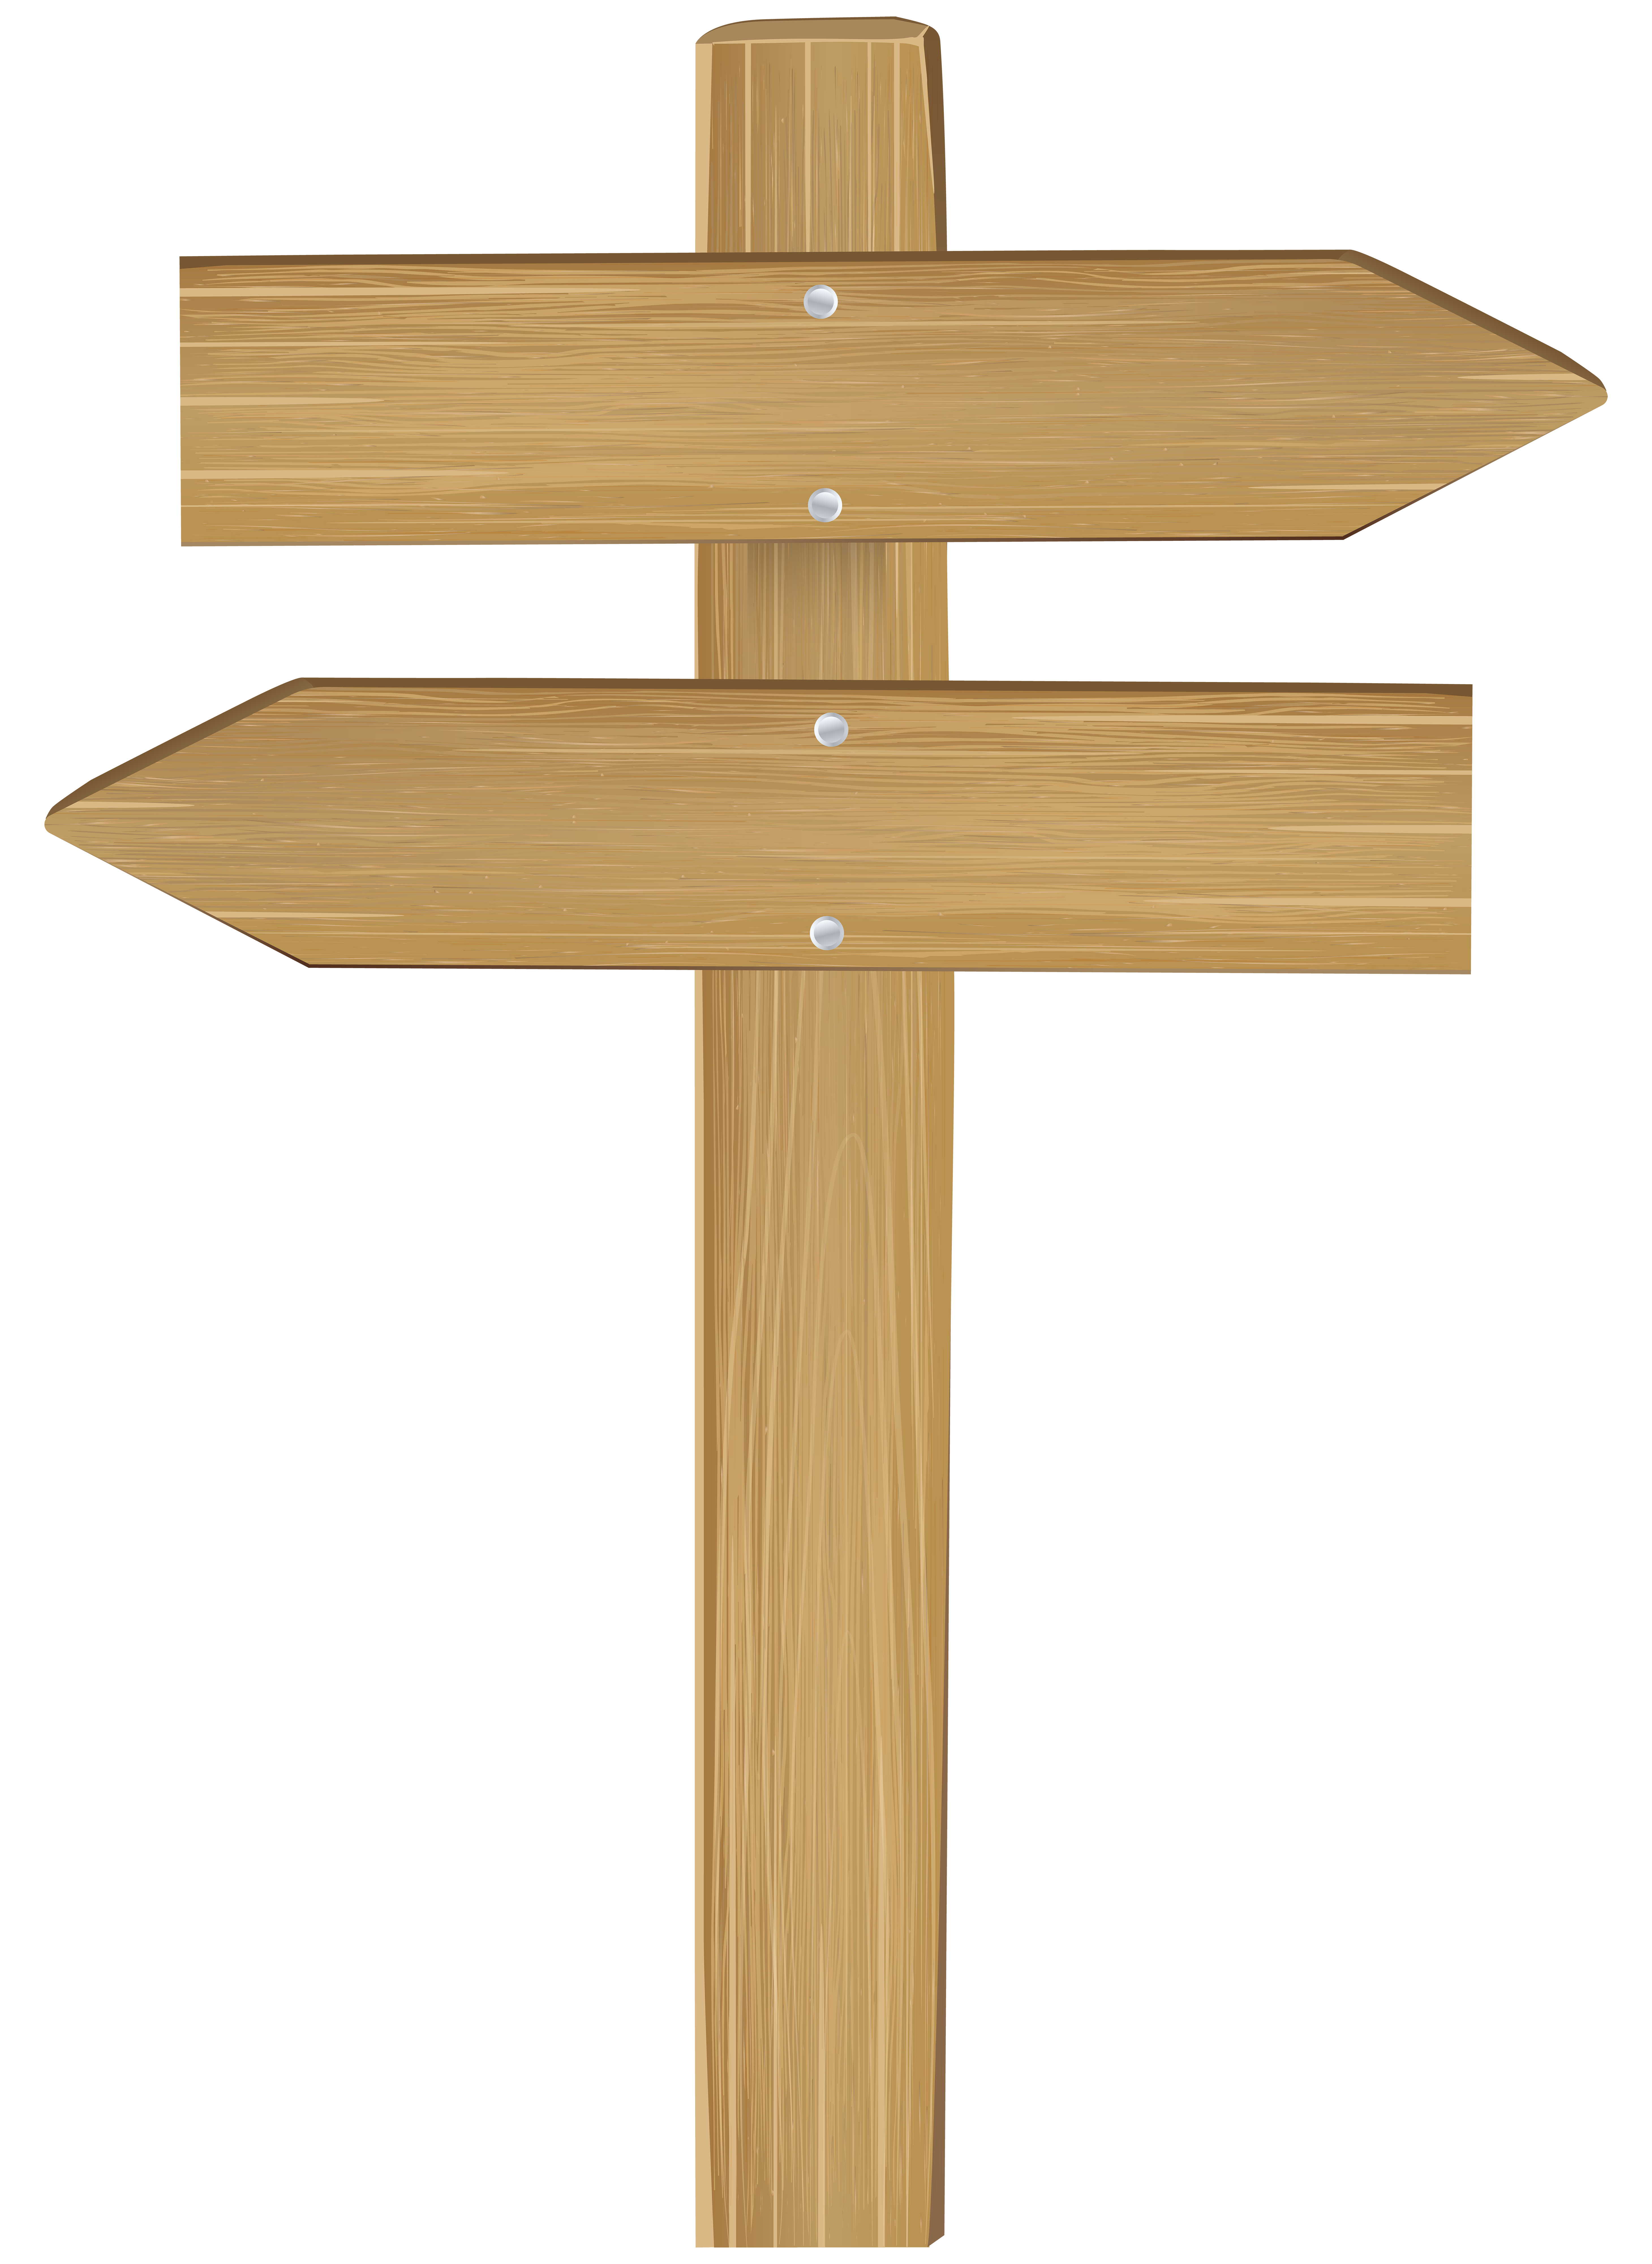 Double Wooden Arrow Sign PNG Clip Art.